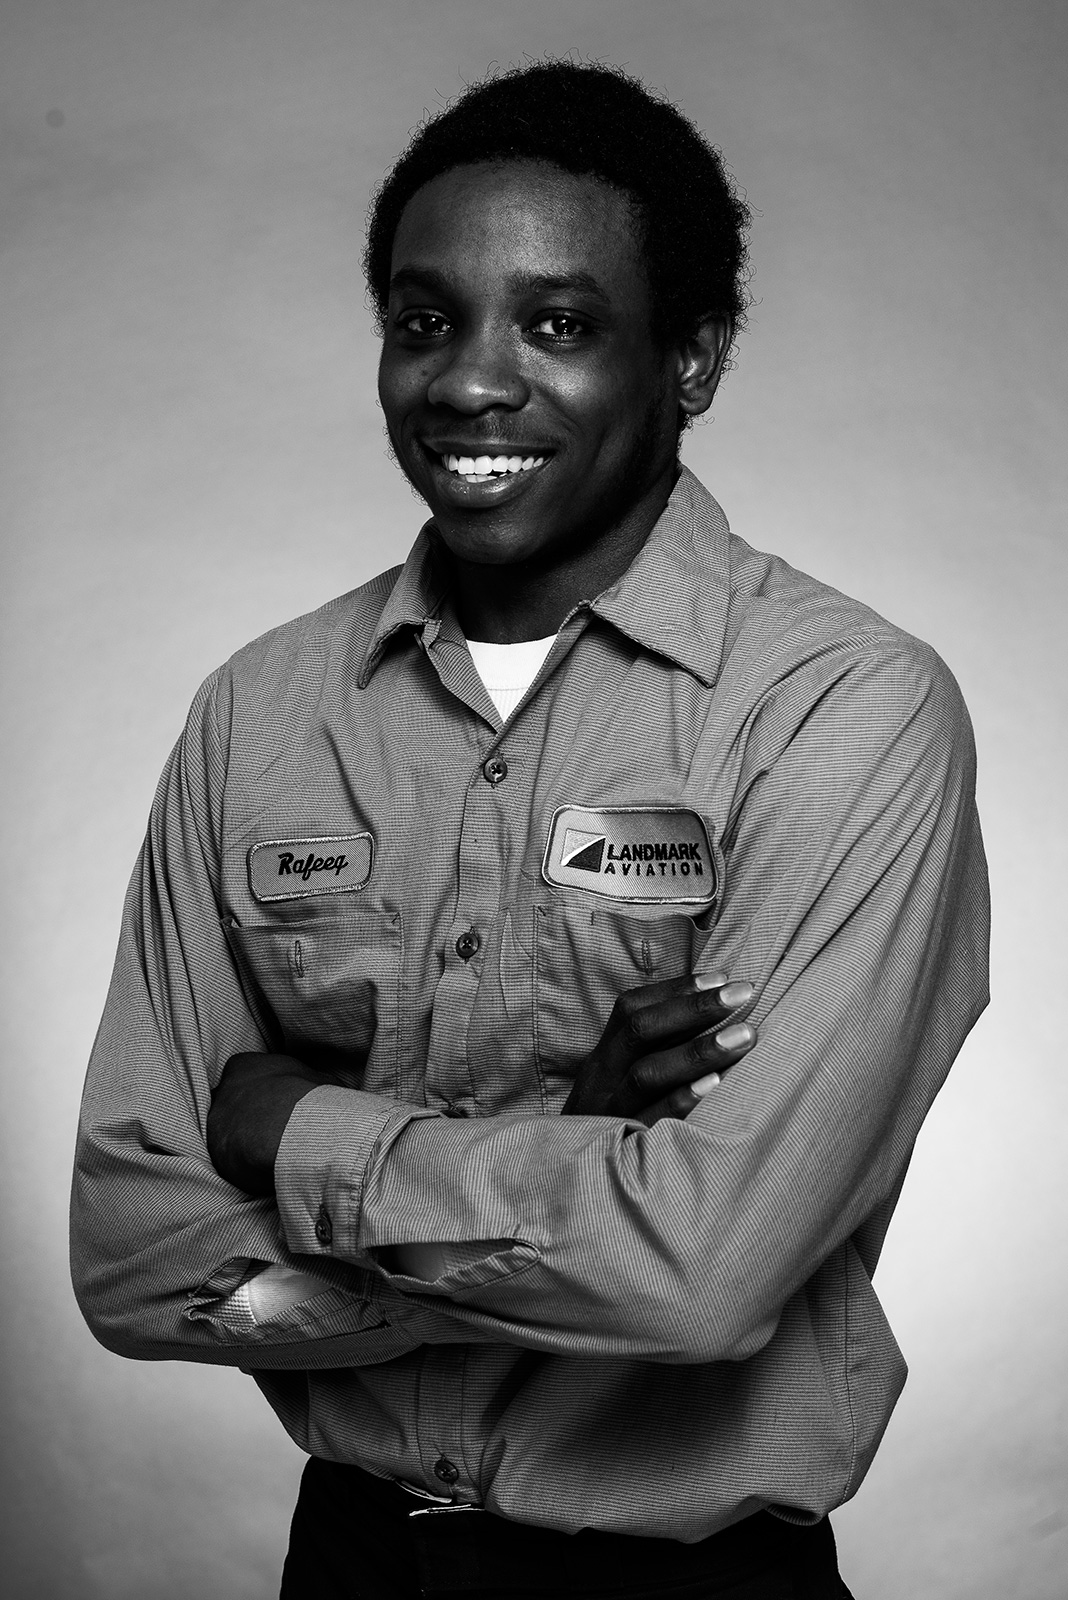 Kevin-Blackburn-B_W-Portraits--0023_original